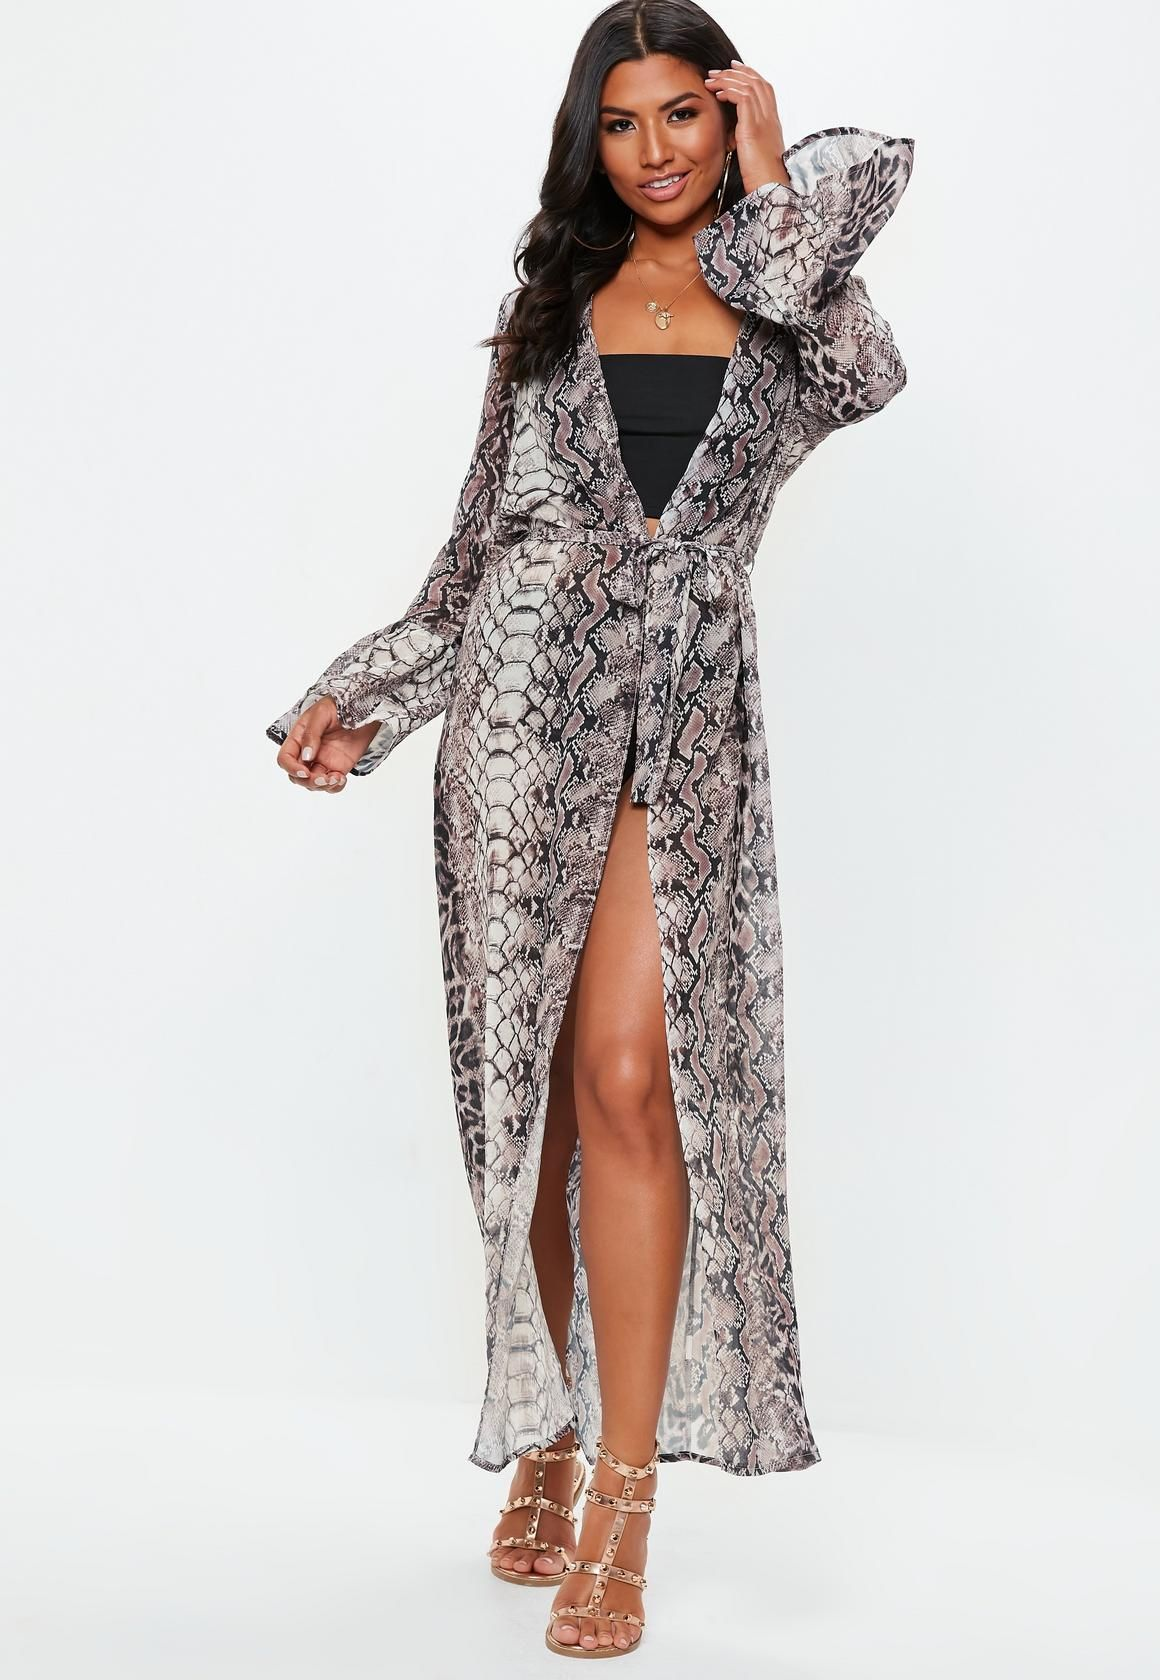 d33de287d8 Missguided - Snake Print Kimono Cover Up   My Style in 2019   Snake ...